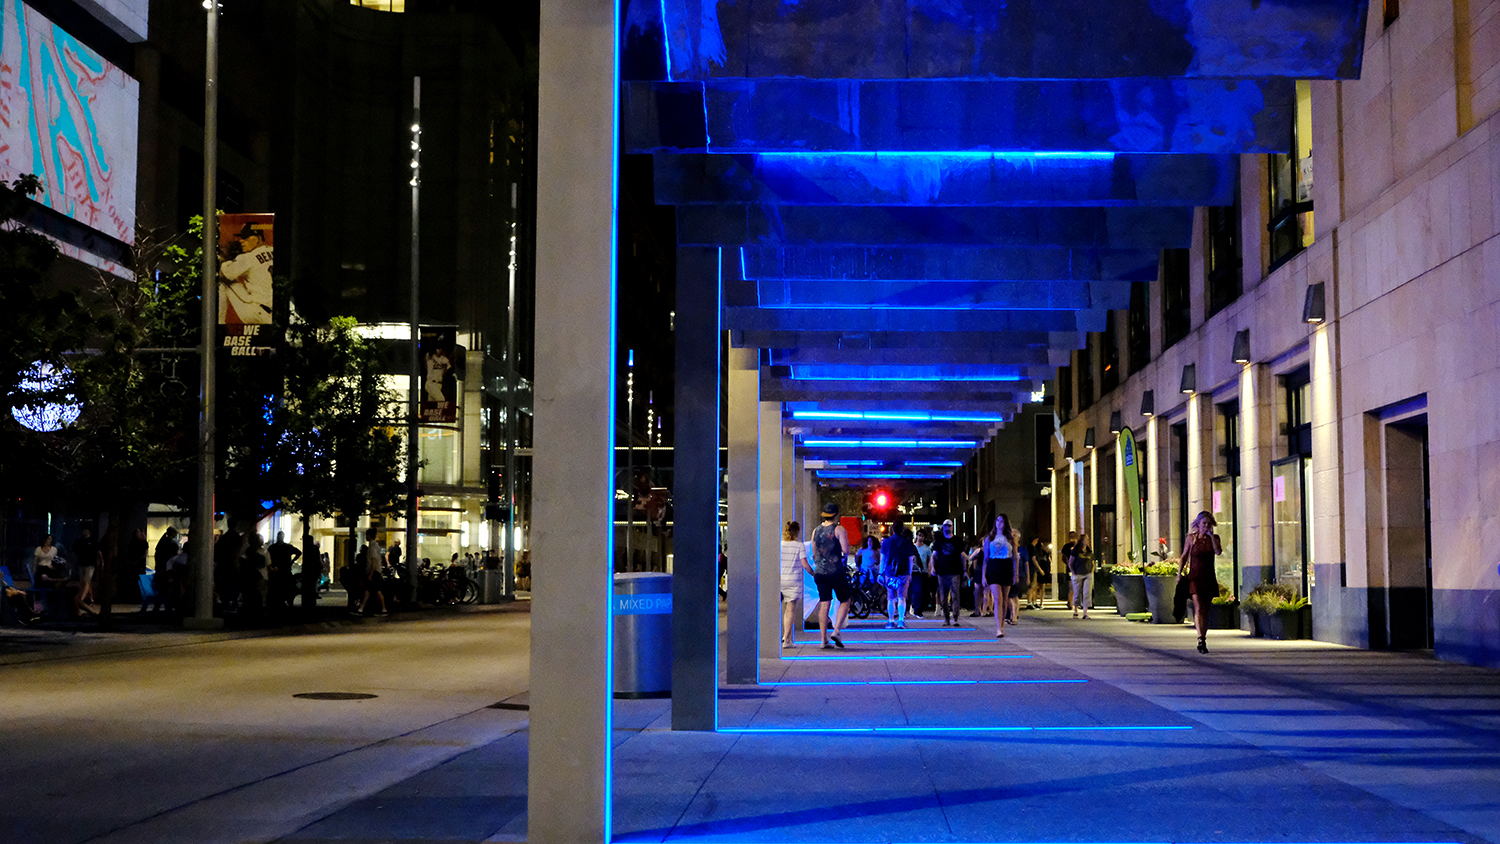 JCFO's Light Walk during Northern Spark in June 2018, a late evening arts event